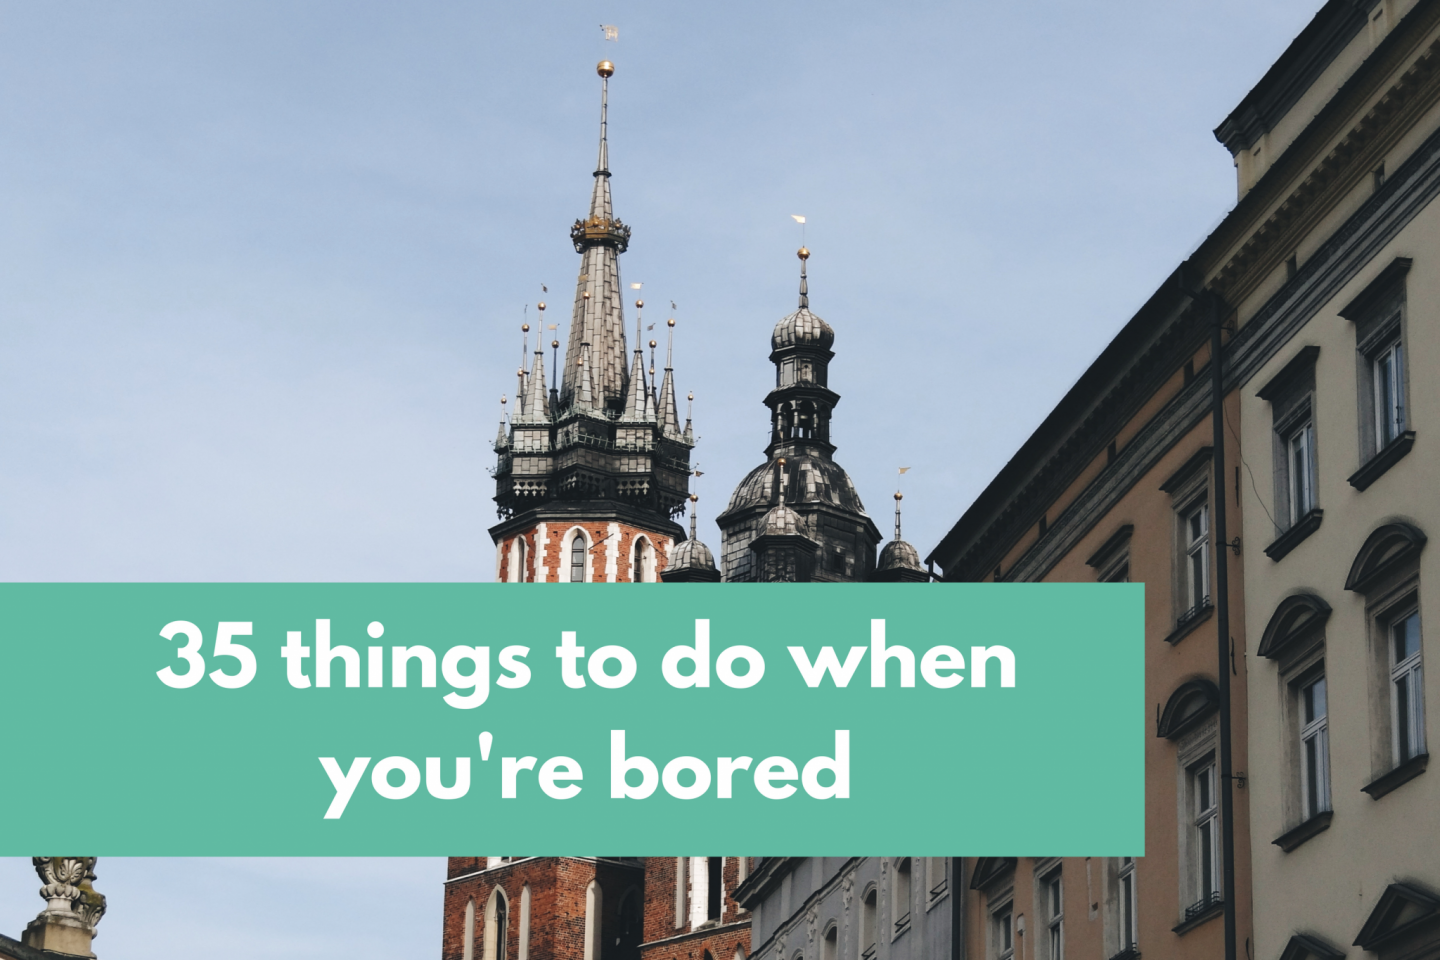 35 Things To Do When You're Bored